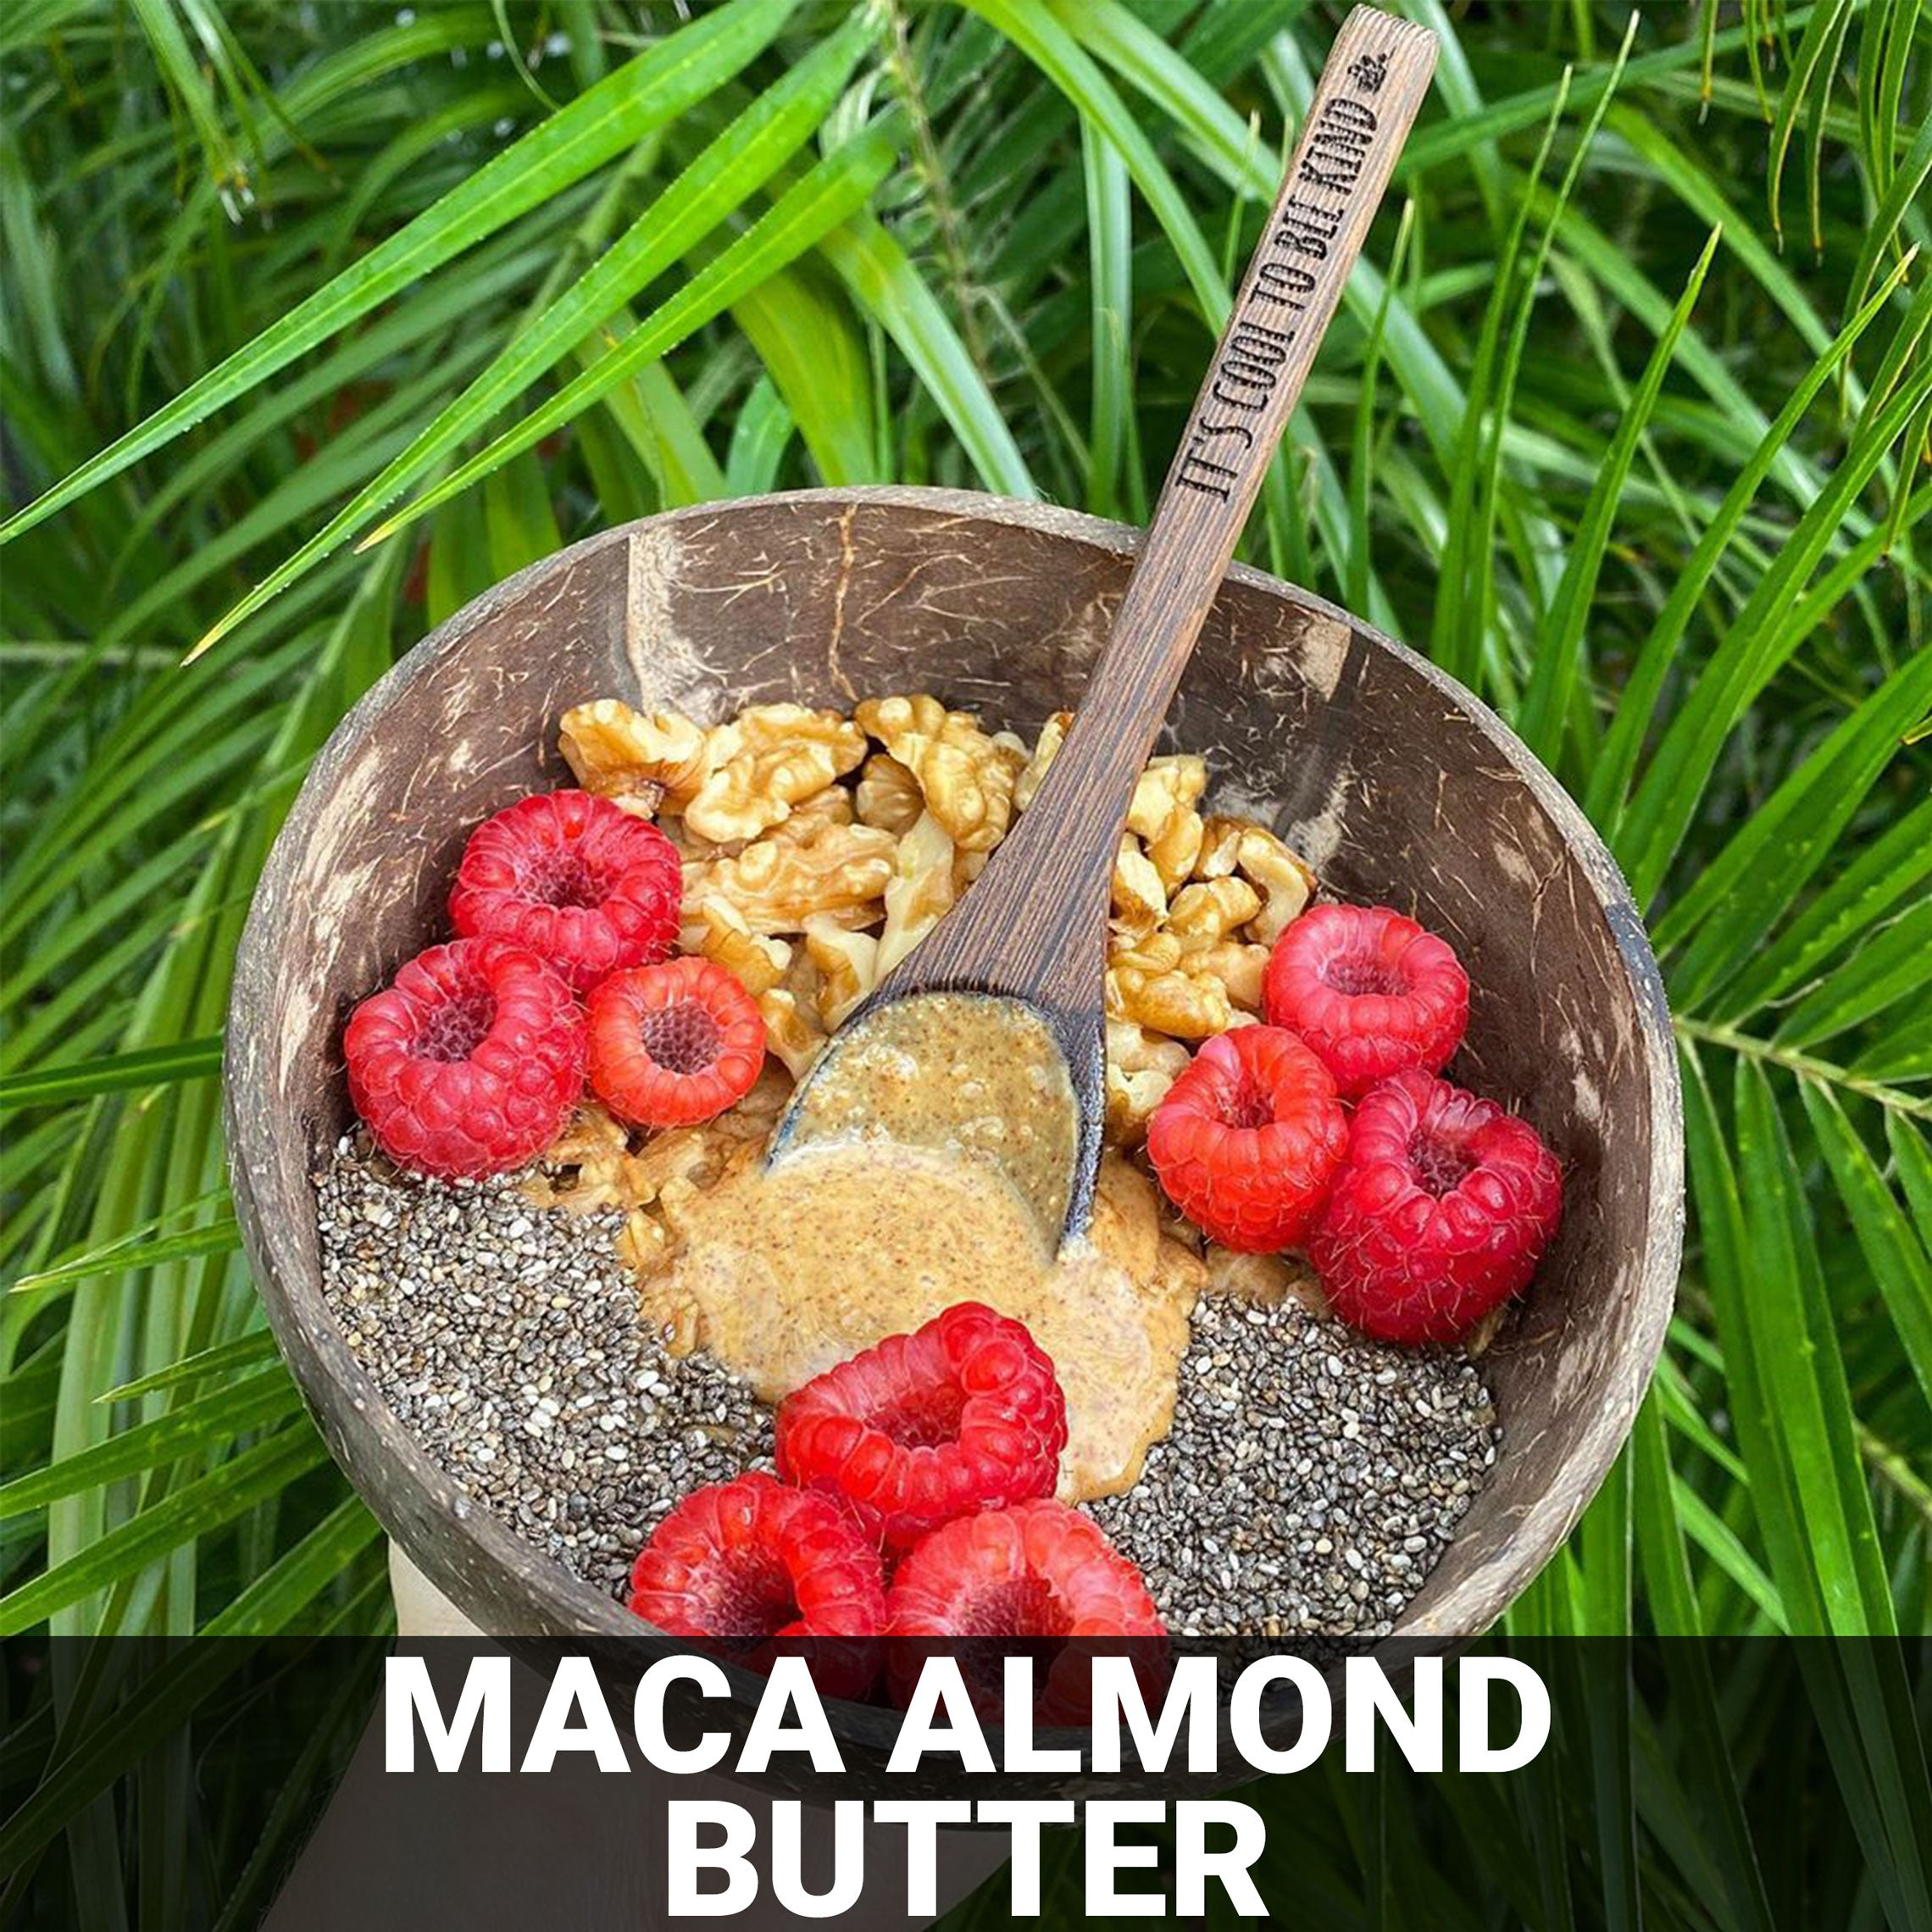 Maca Almond Butter Recipe - Foods Alive